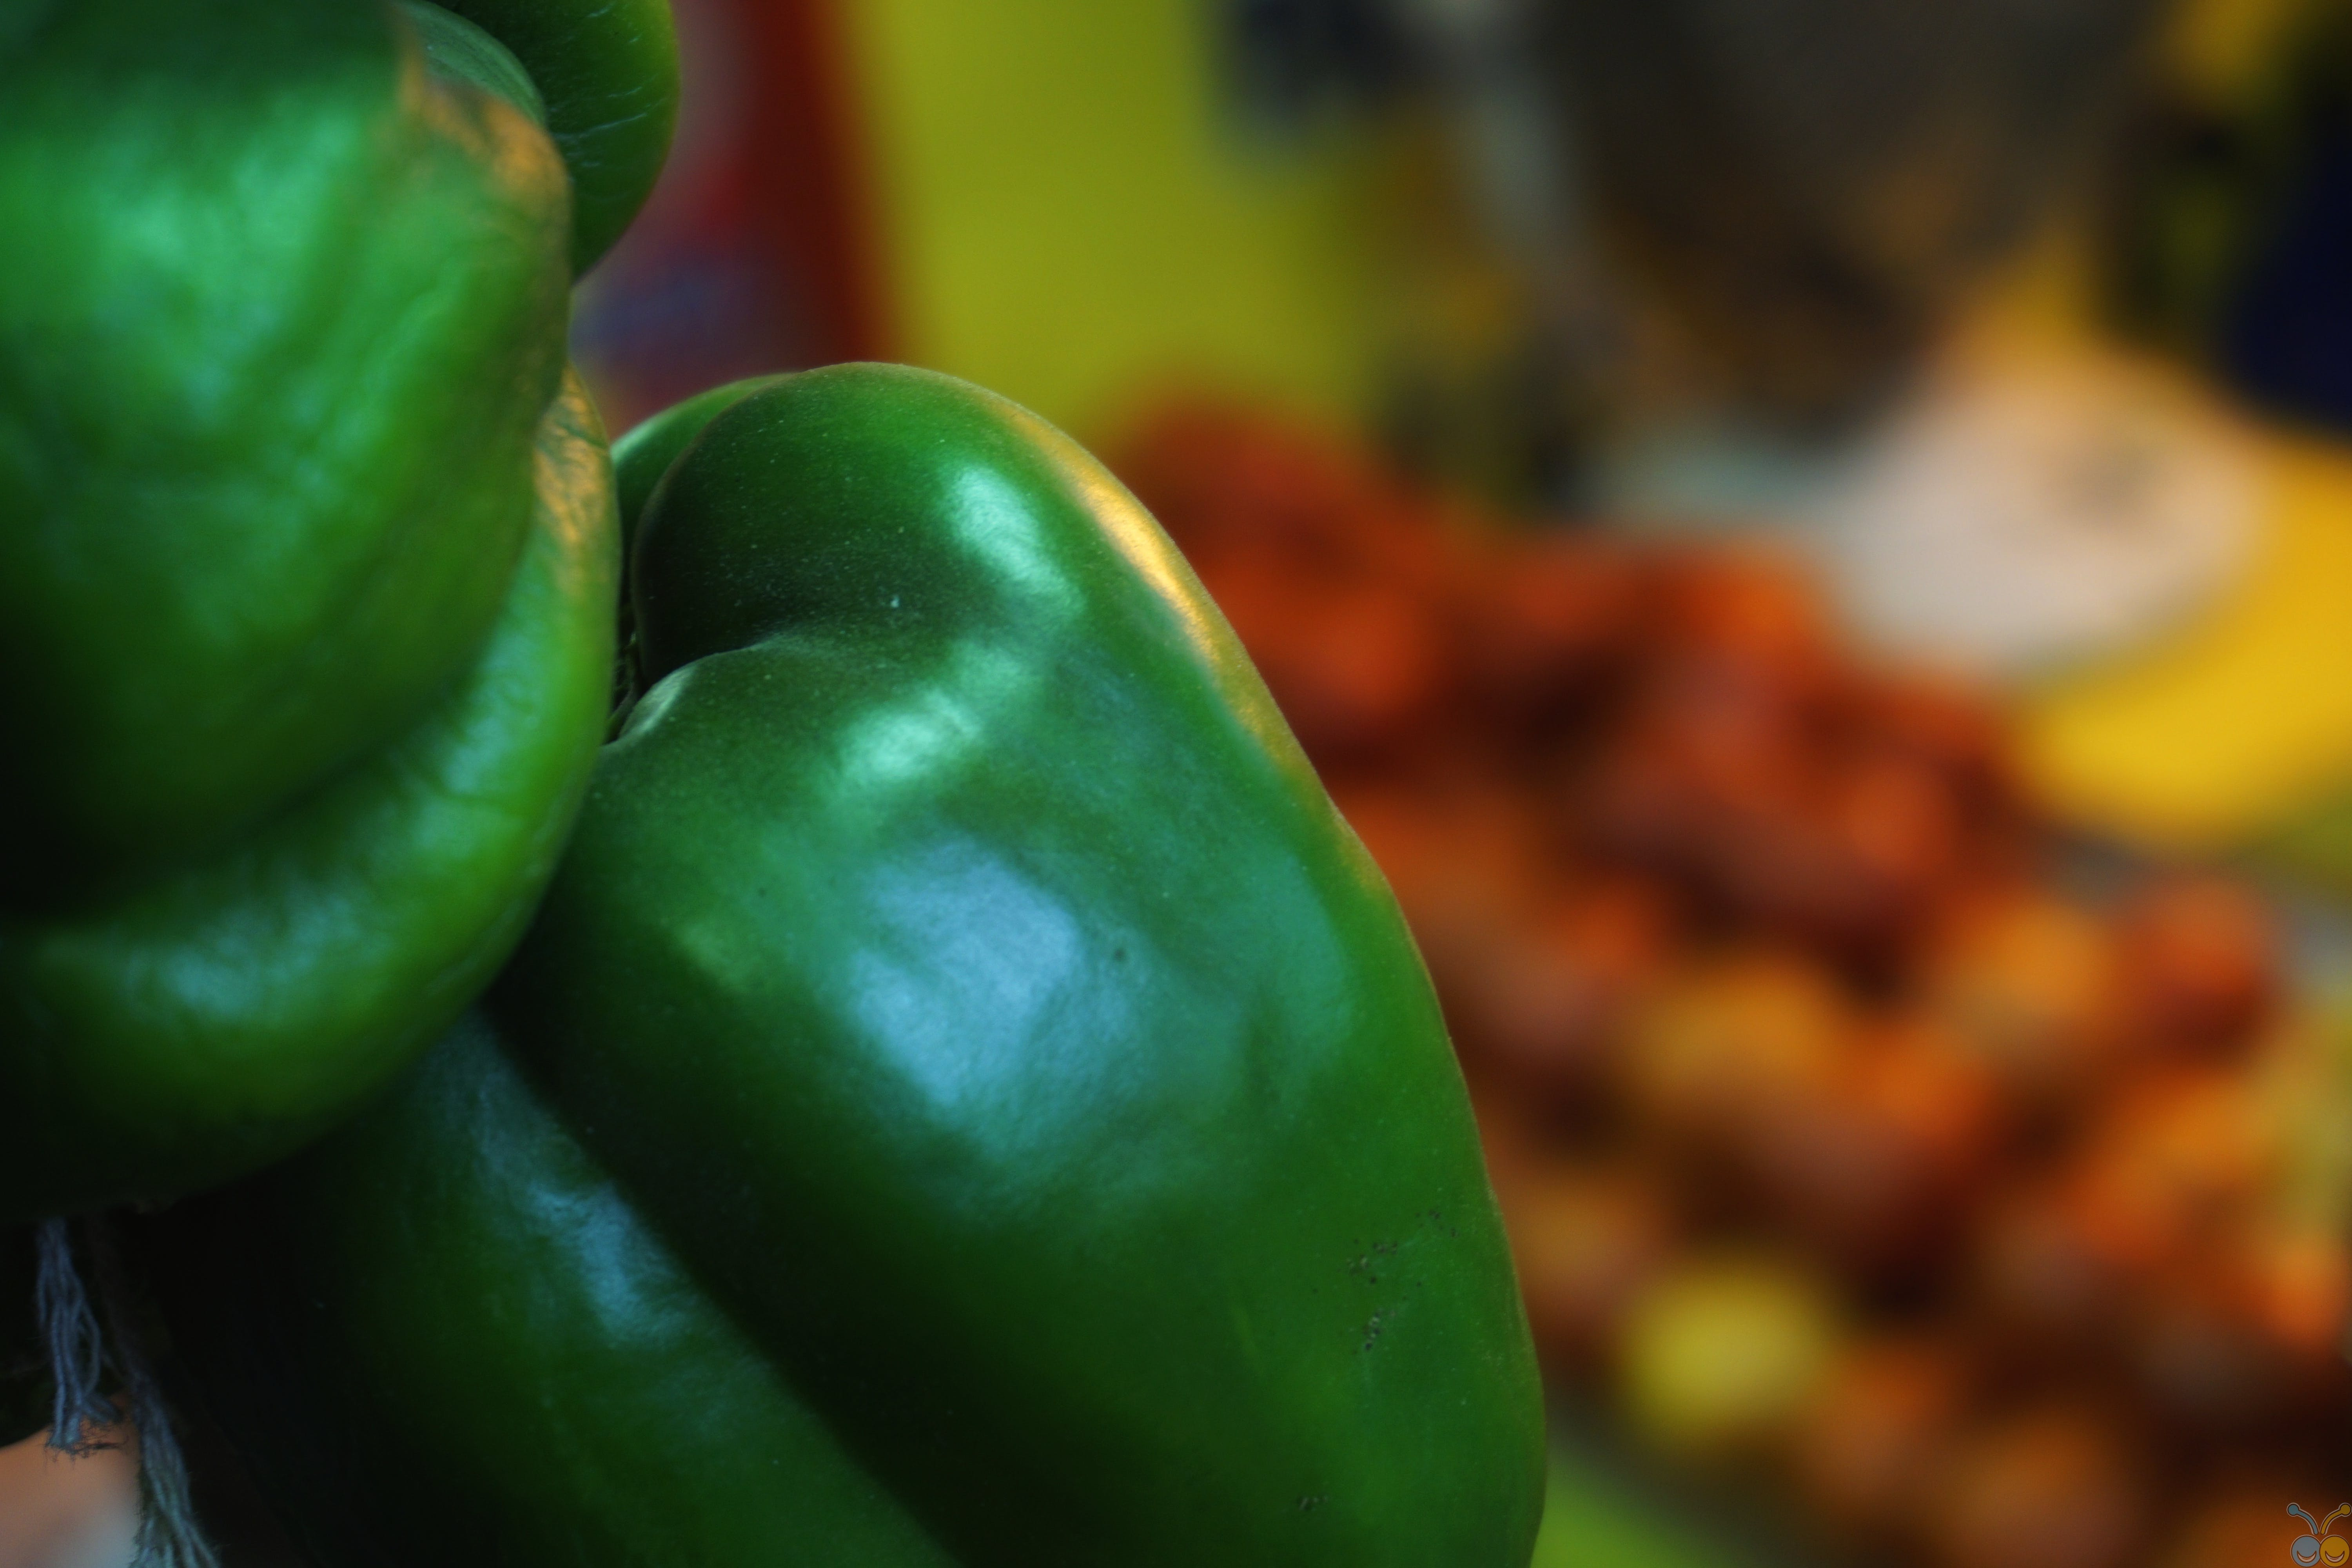 alluring, bell peppers, blur